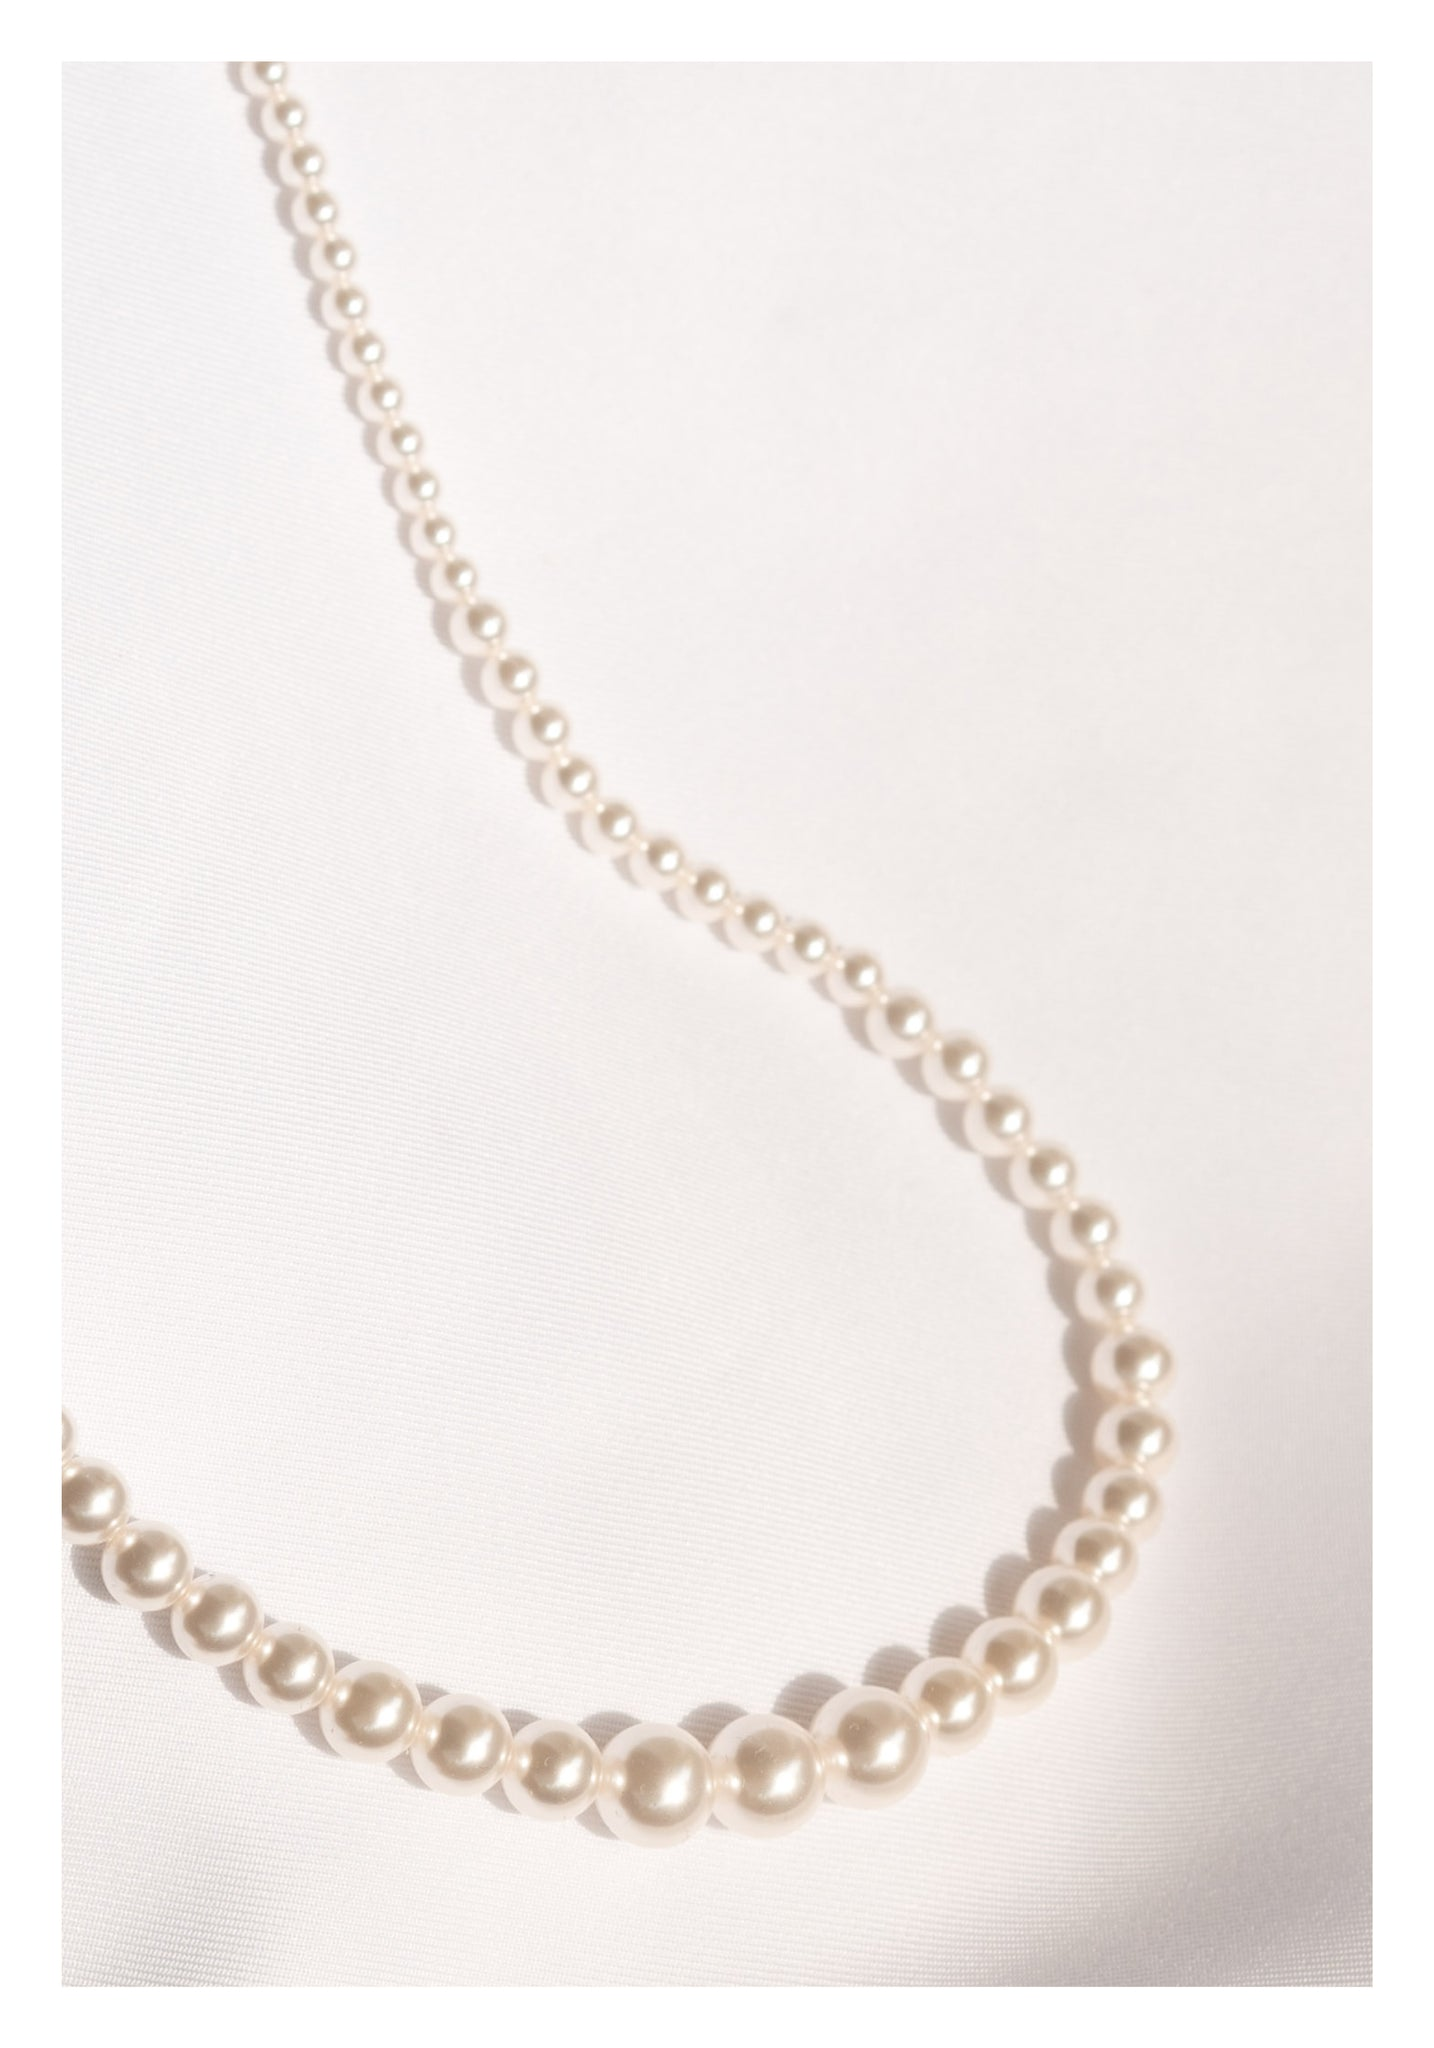 Gradient Faux Pearl Necklace - whoami